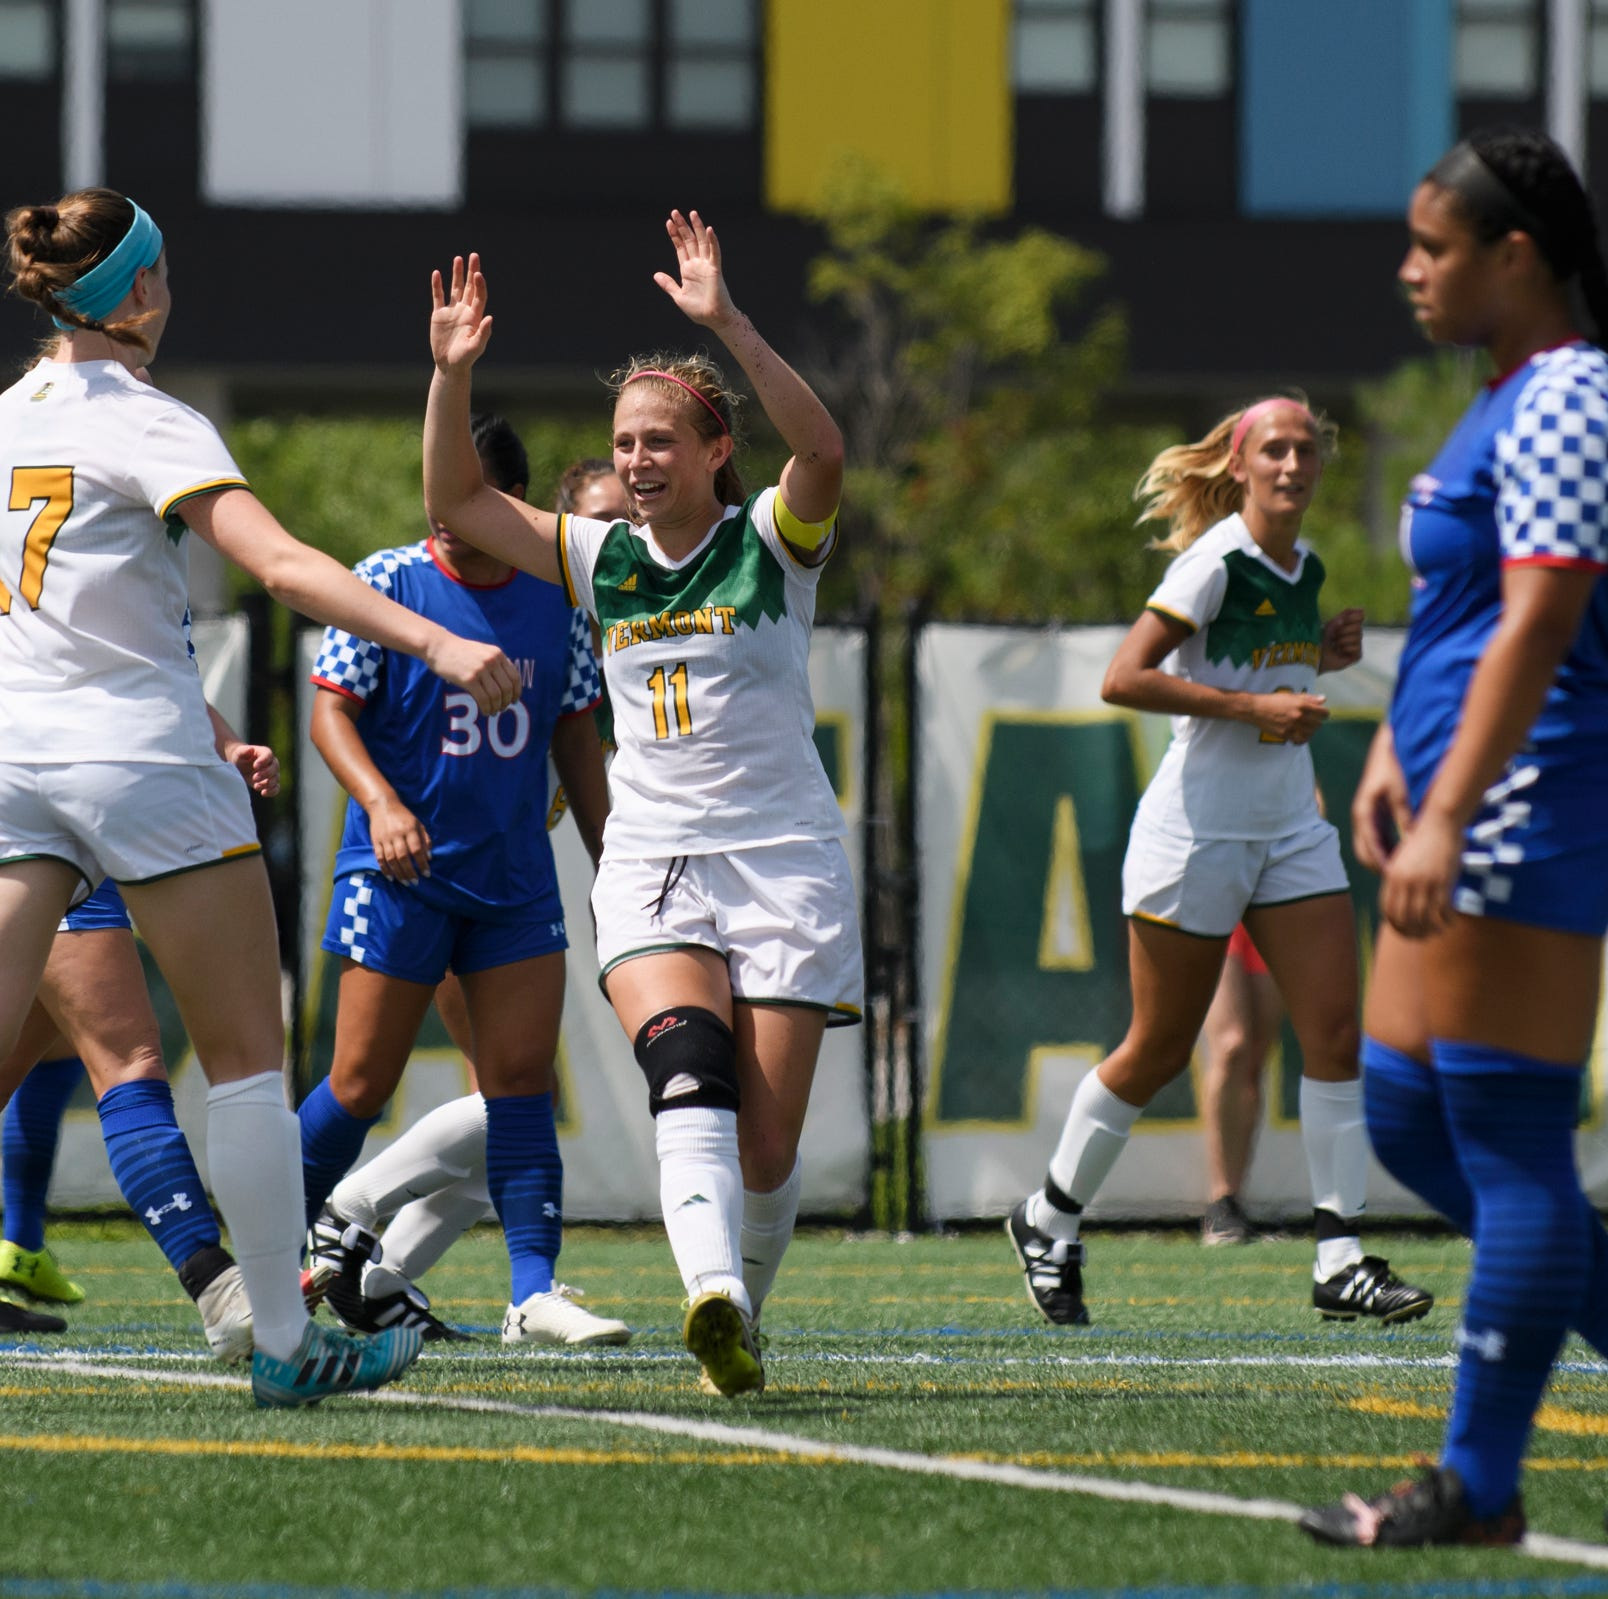 UVM women's soccer draws with American 2-2 in season opener